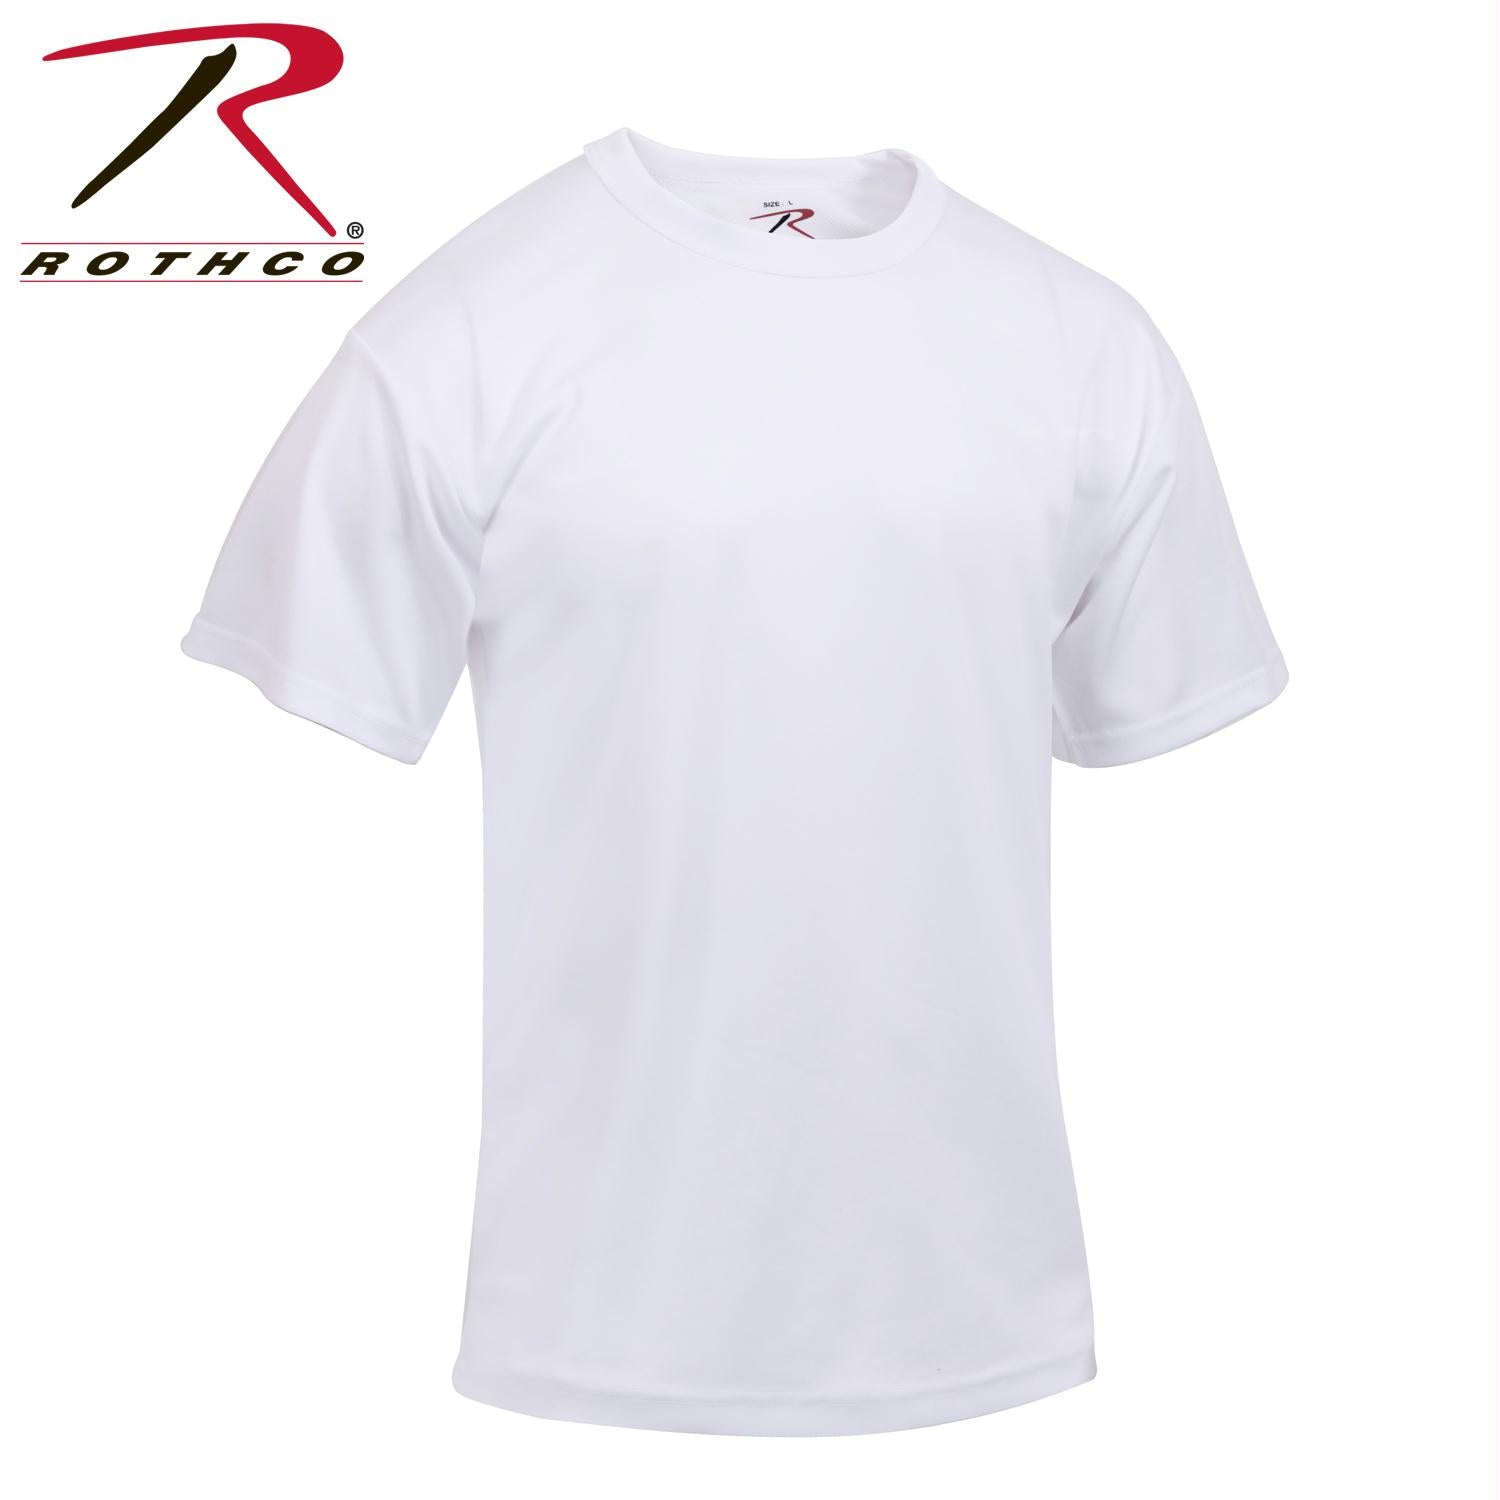 Rothco Quick Dry Moisture Wicking T-shirt - White / M